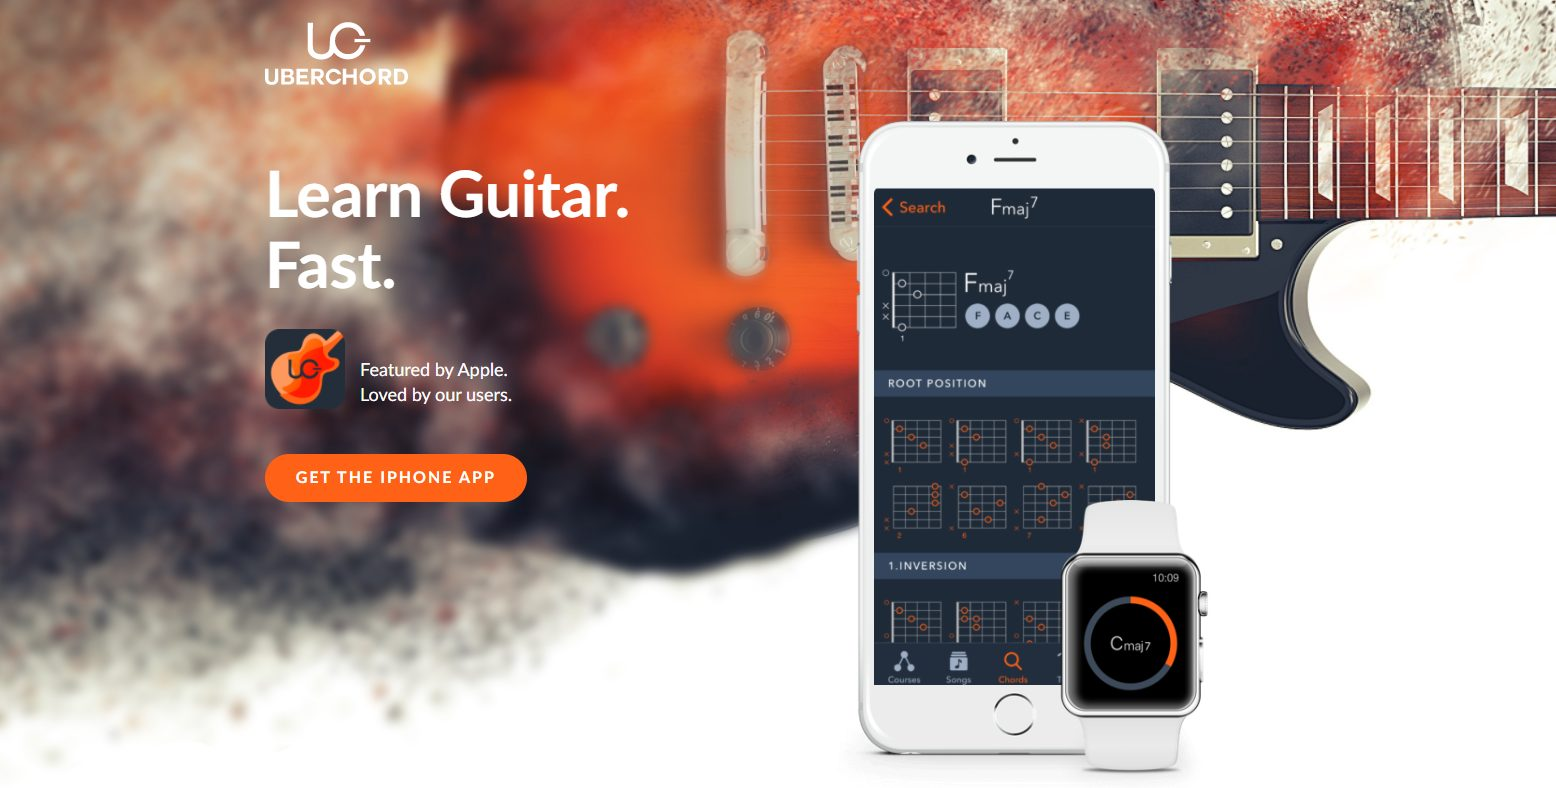 Uberchord App Home Page